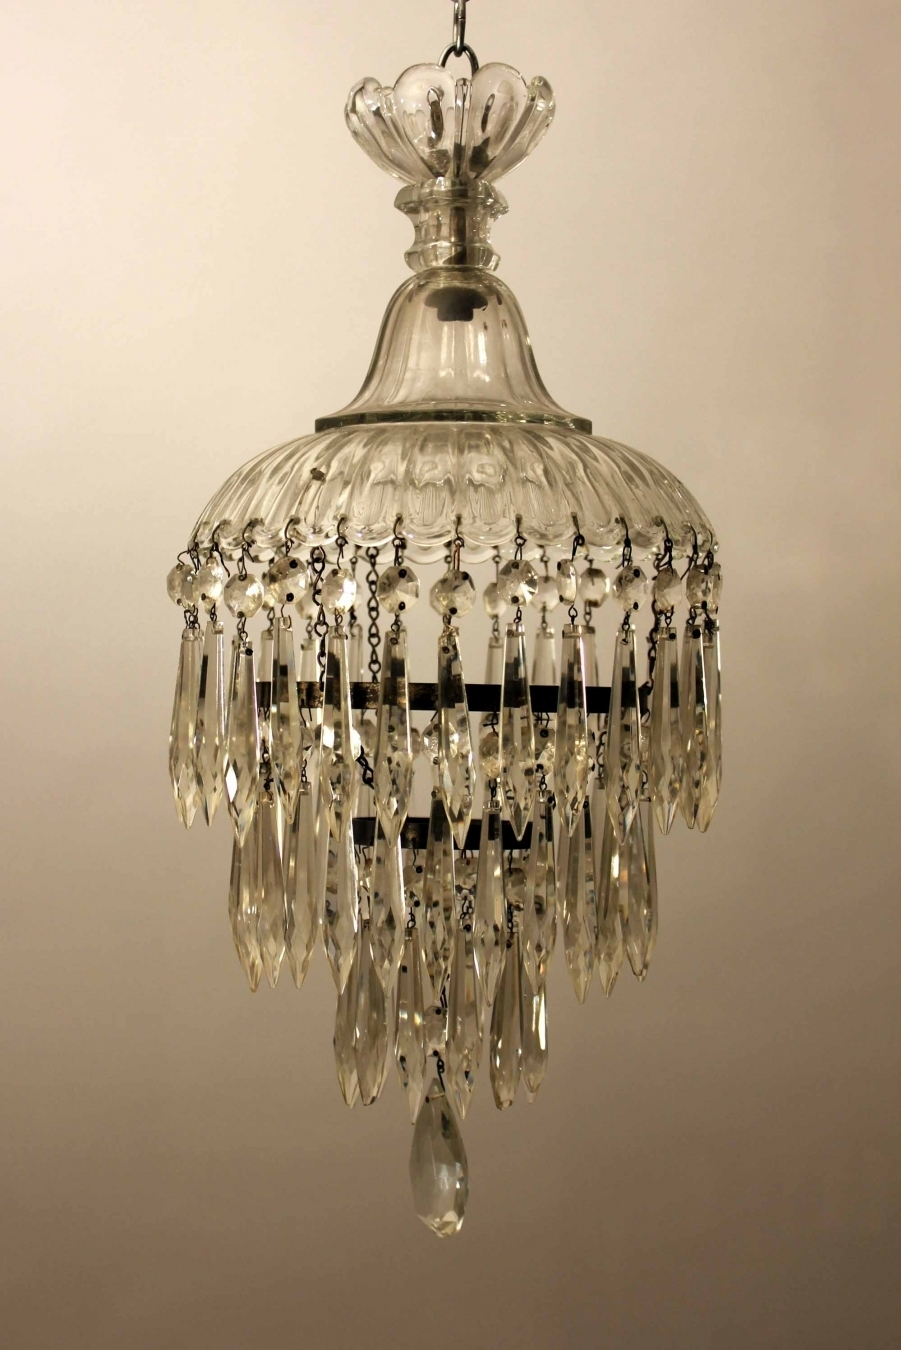 Pair Of Edwardian Chandeliers Trendfirst Pertaining To Edwardian Chandeliers (Image 11 of 15)